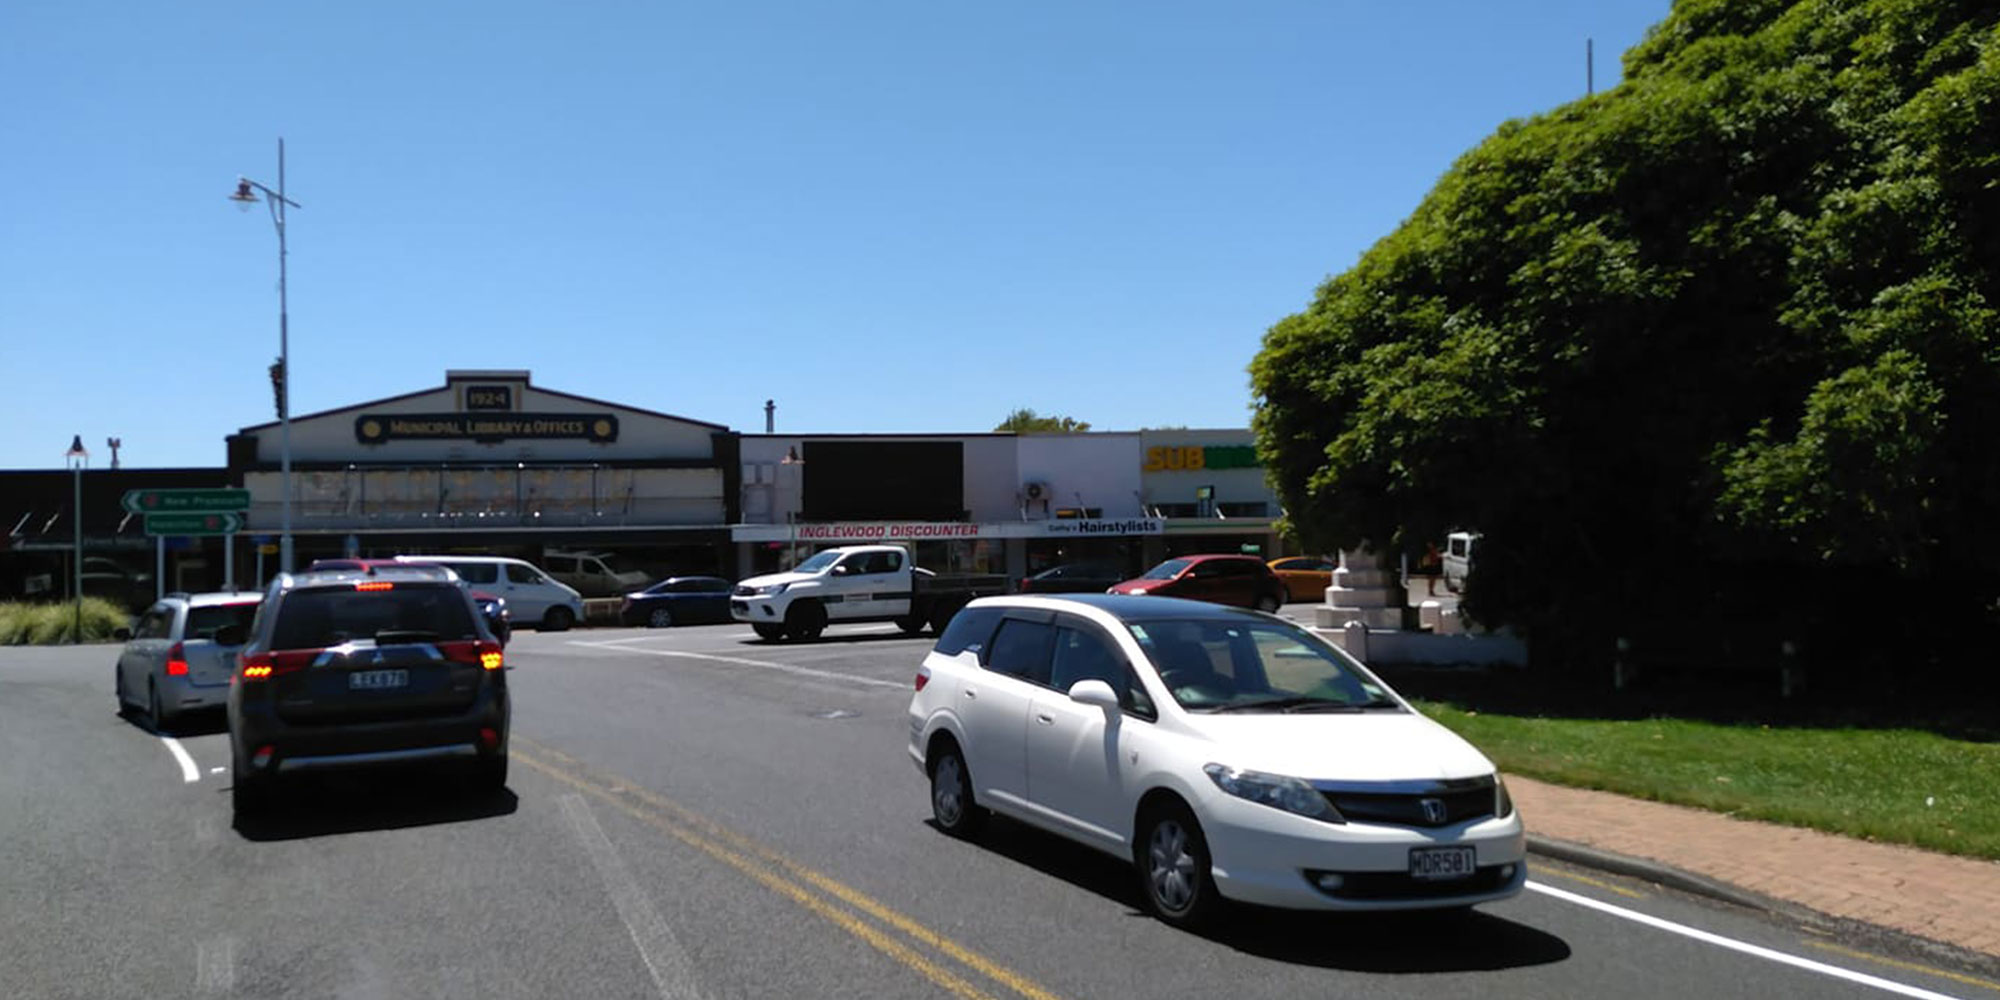 Street View of MAD Inglewood Static Board